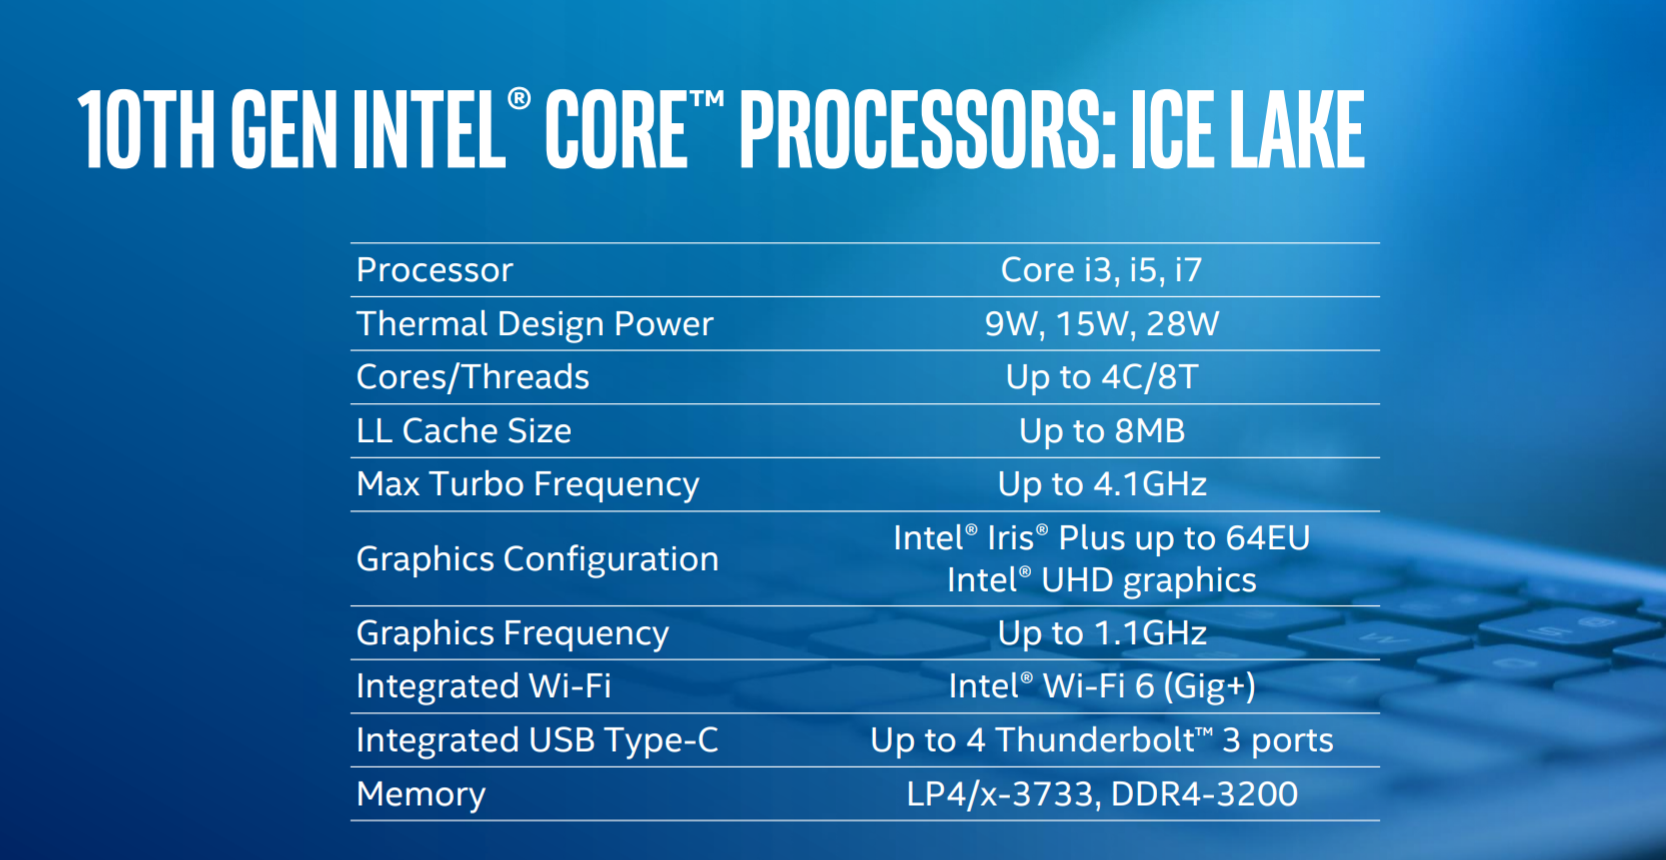 Intel Ice Lake mobile processors